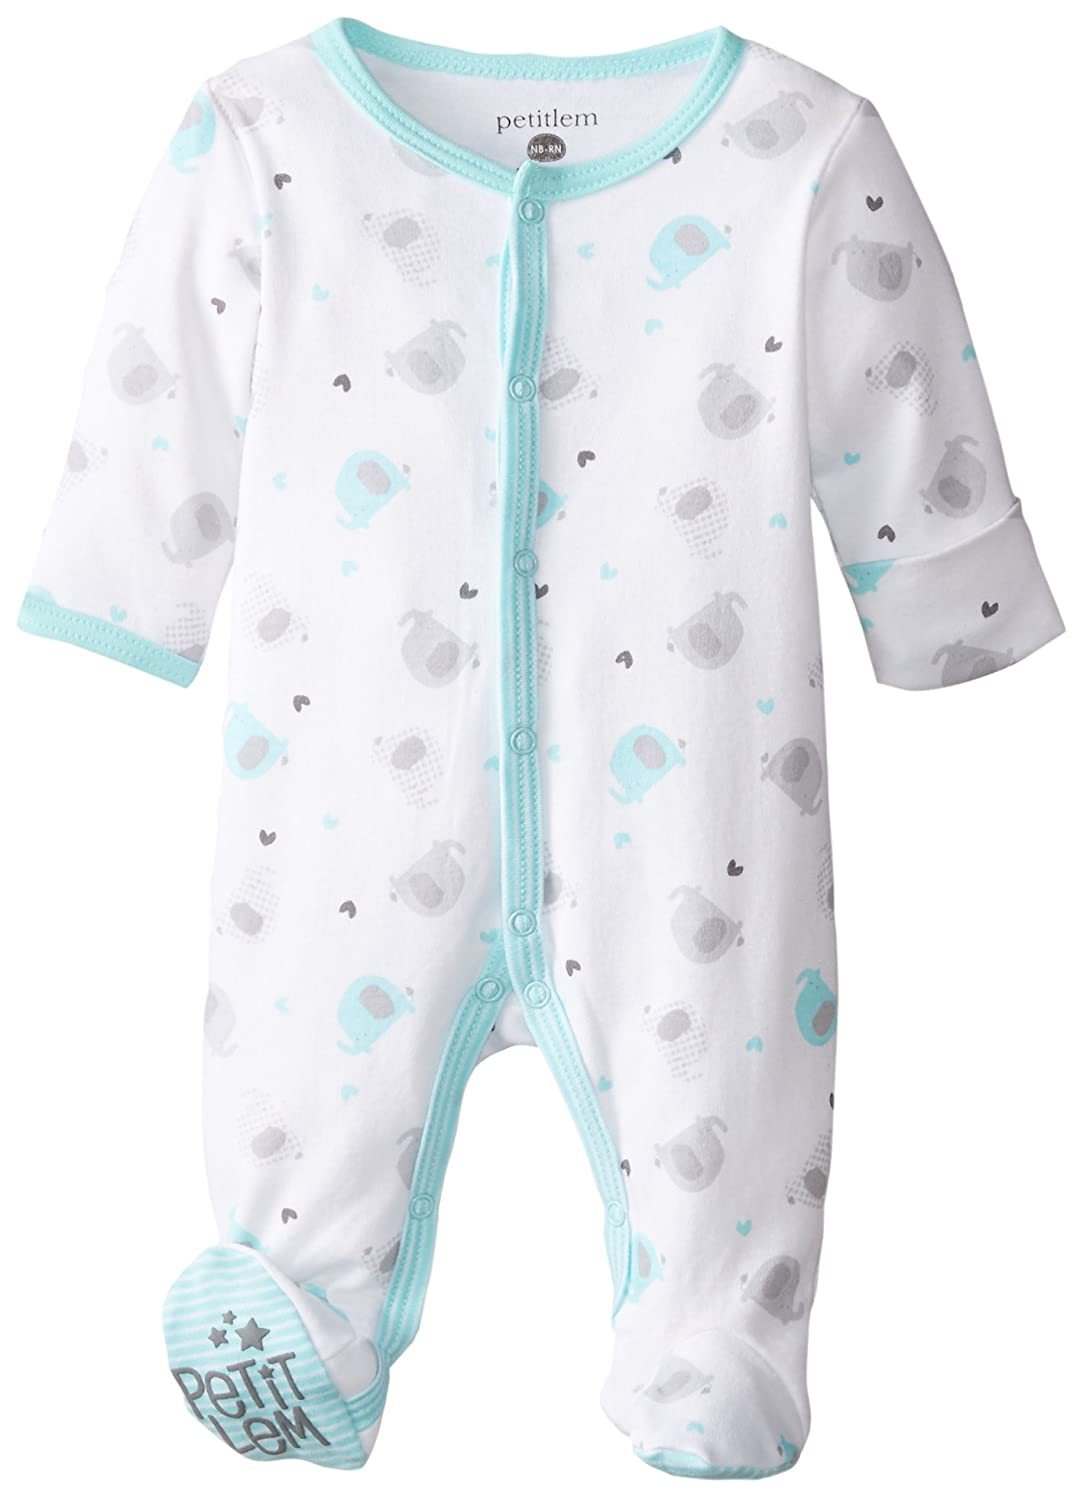 Amazon.com: Baby Footed Sleeper, Premium Soft and Breathable Cotton ...